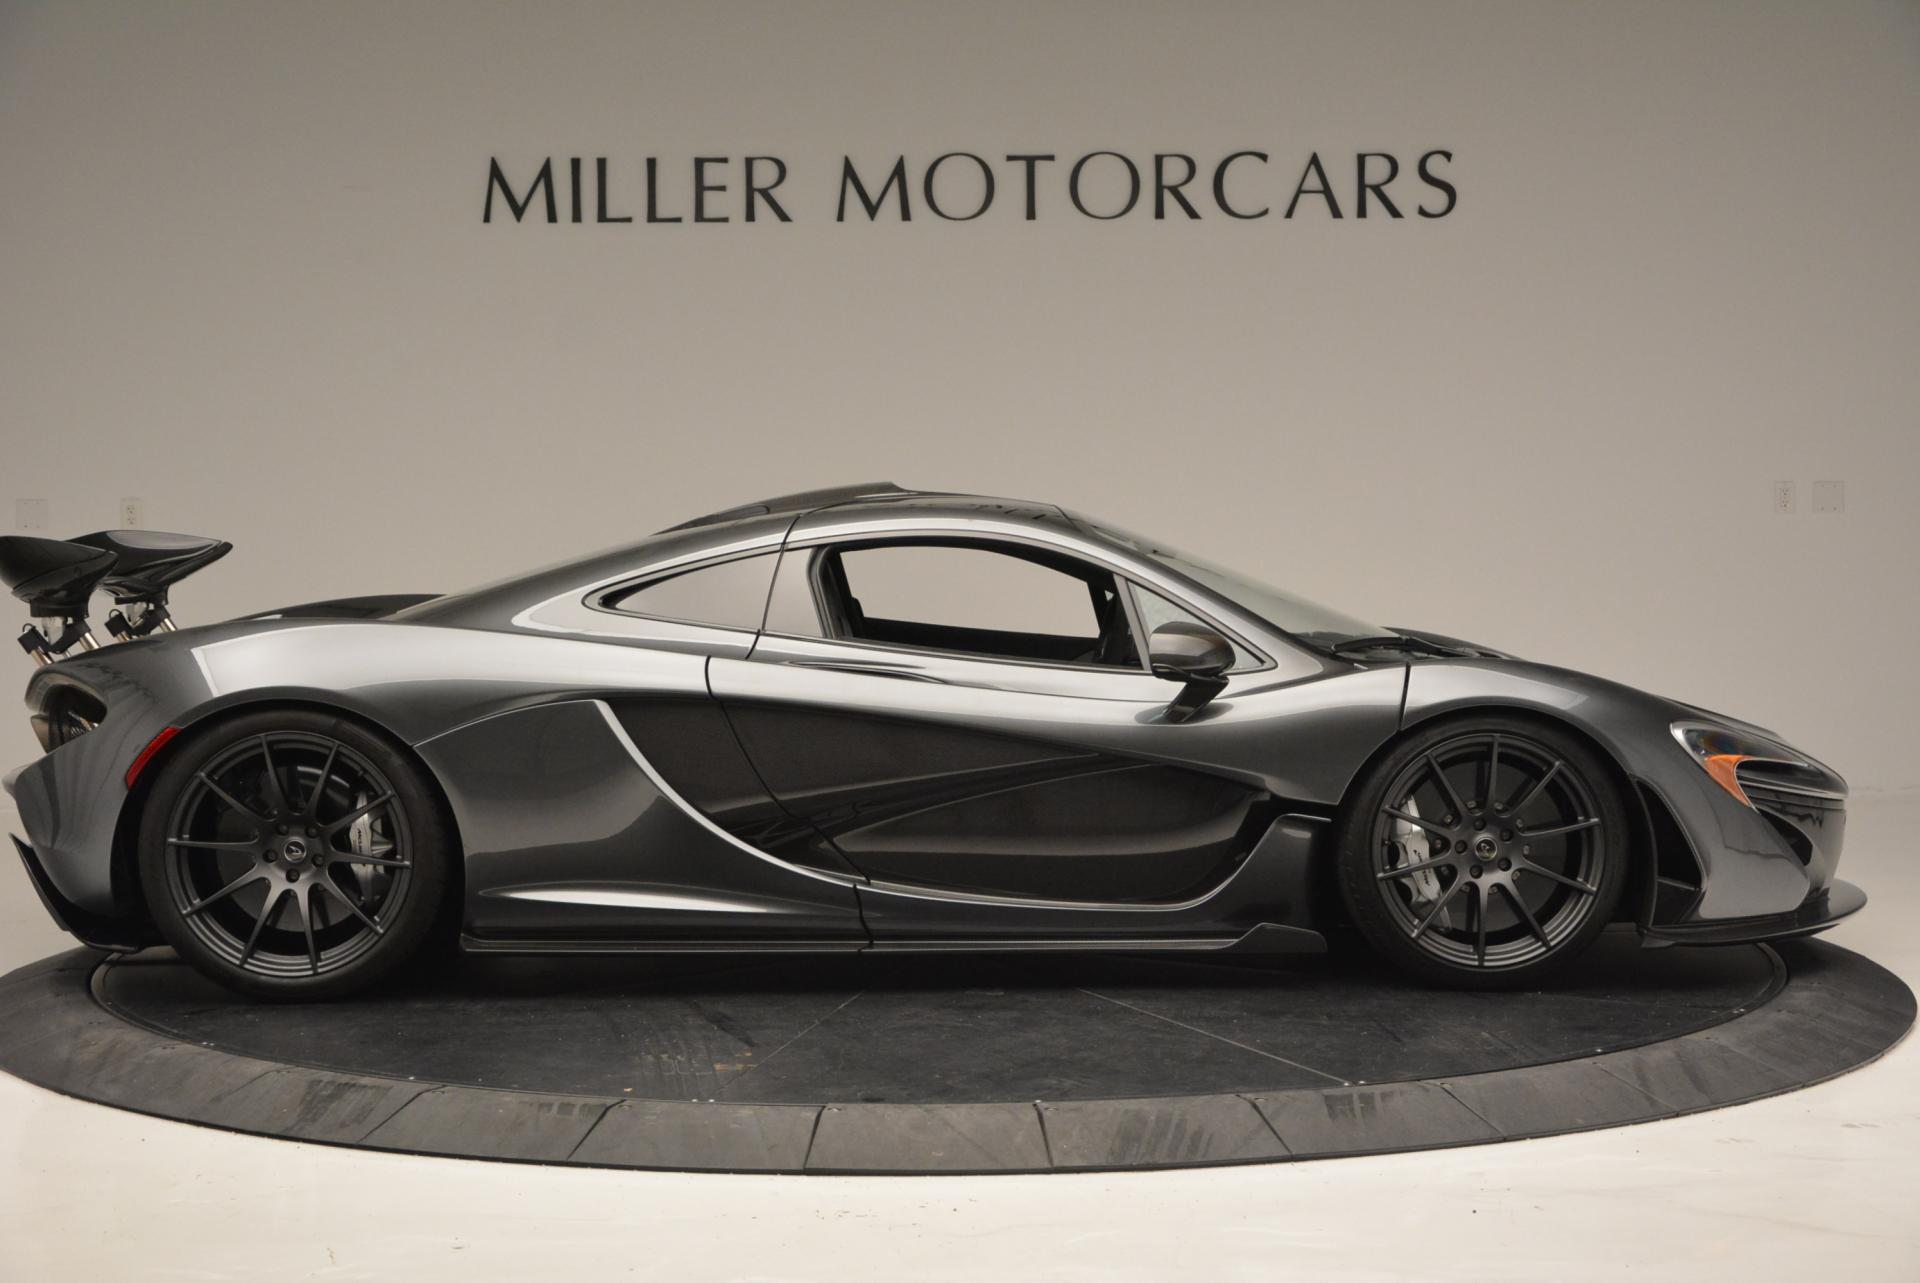 Used 2014 McLaren P1 Coupe For Sale In Greenwich, CT. Alfa Romeo of Greenwich, 3100 513_p12